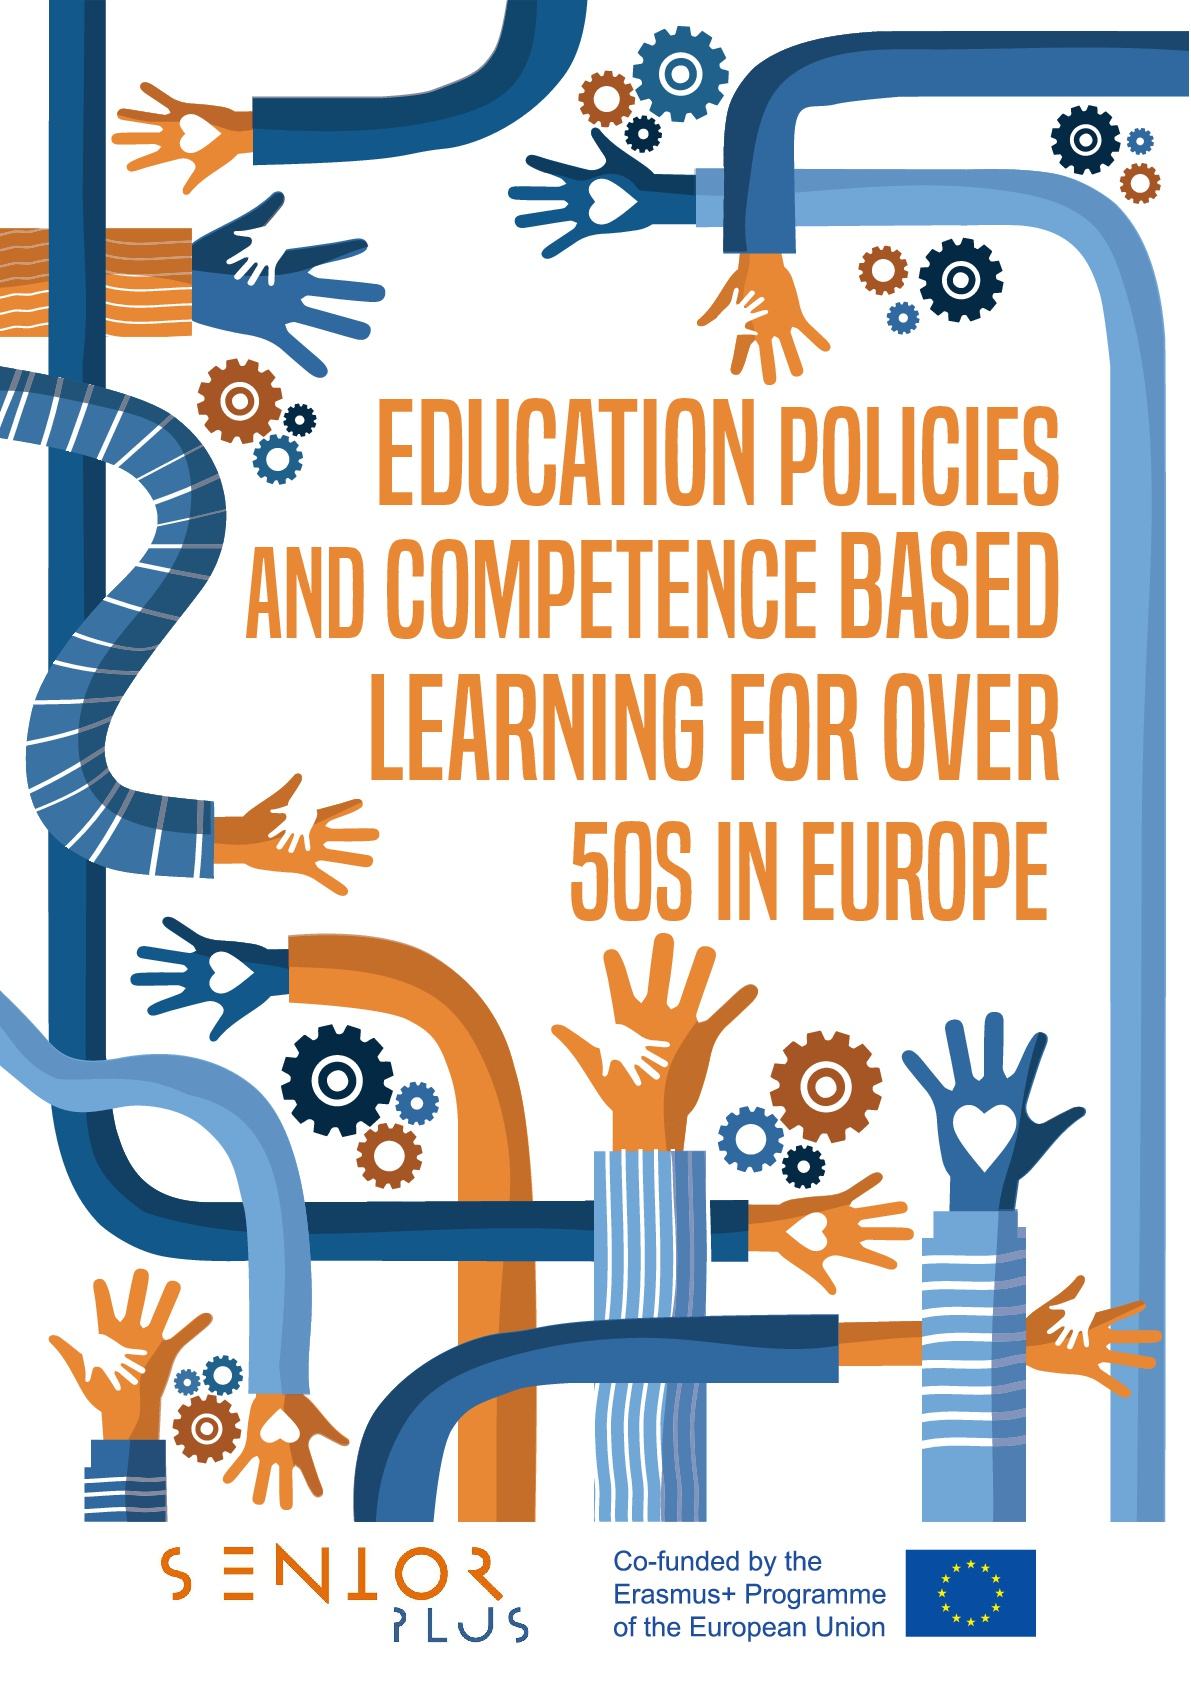 (EN) Education Policies and Competence based learning for over 50s in Europe